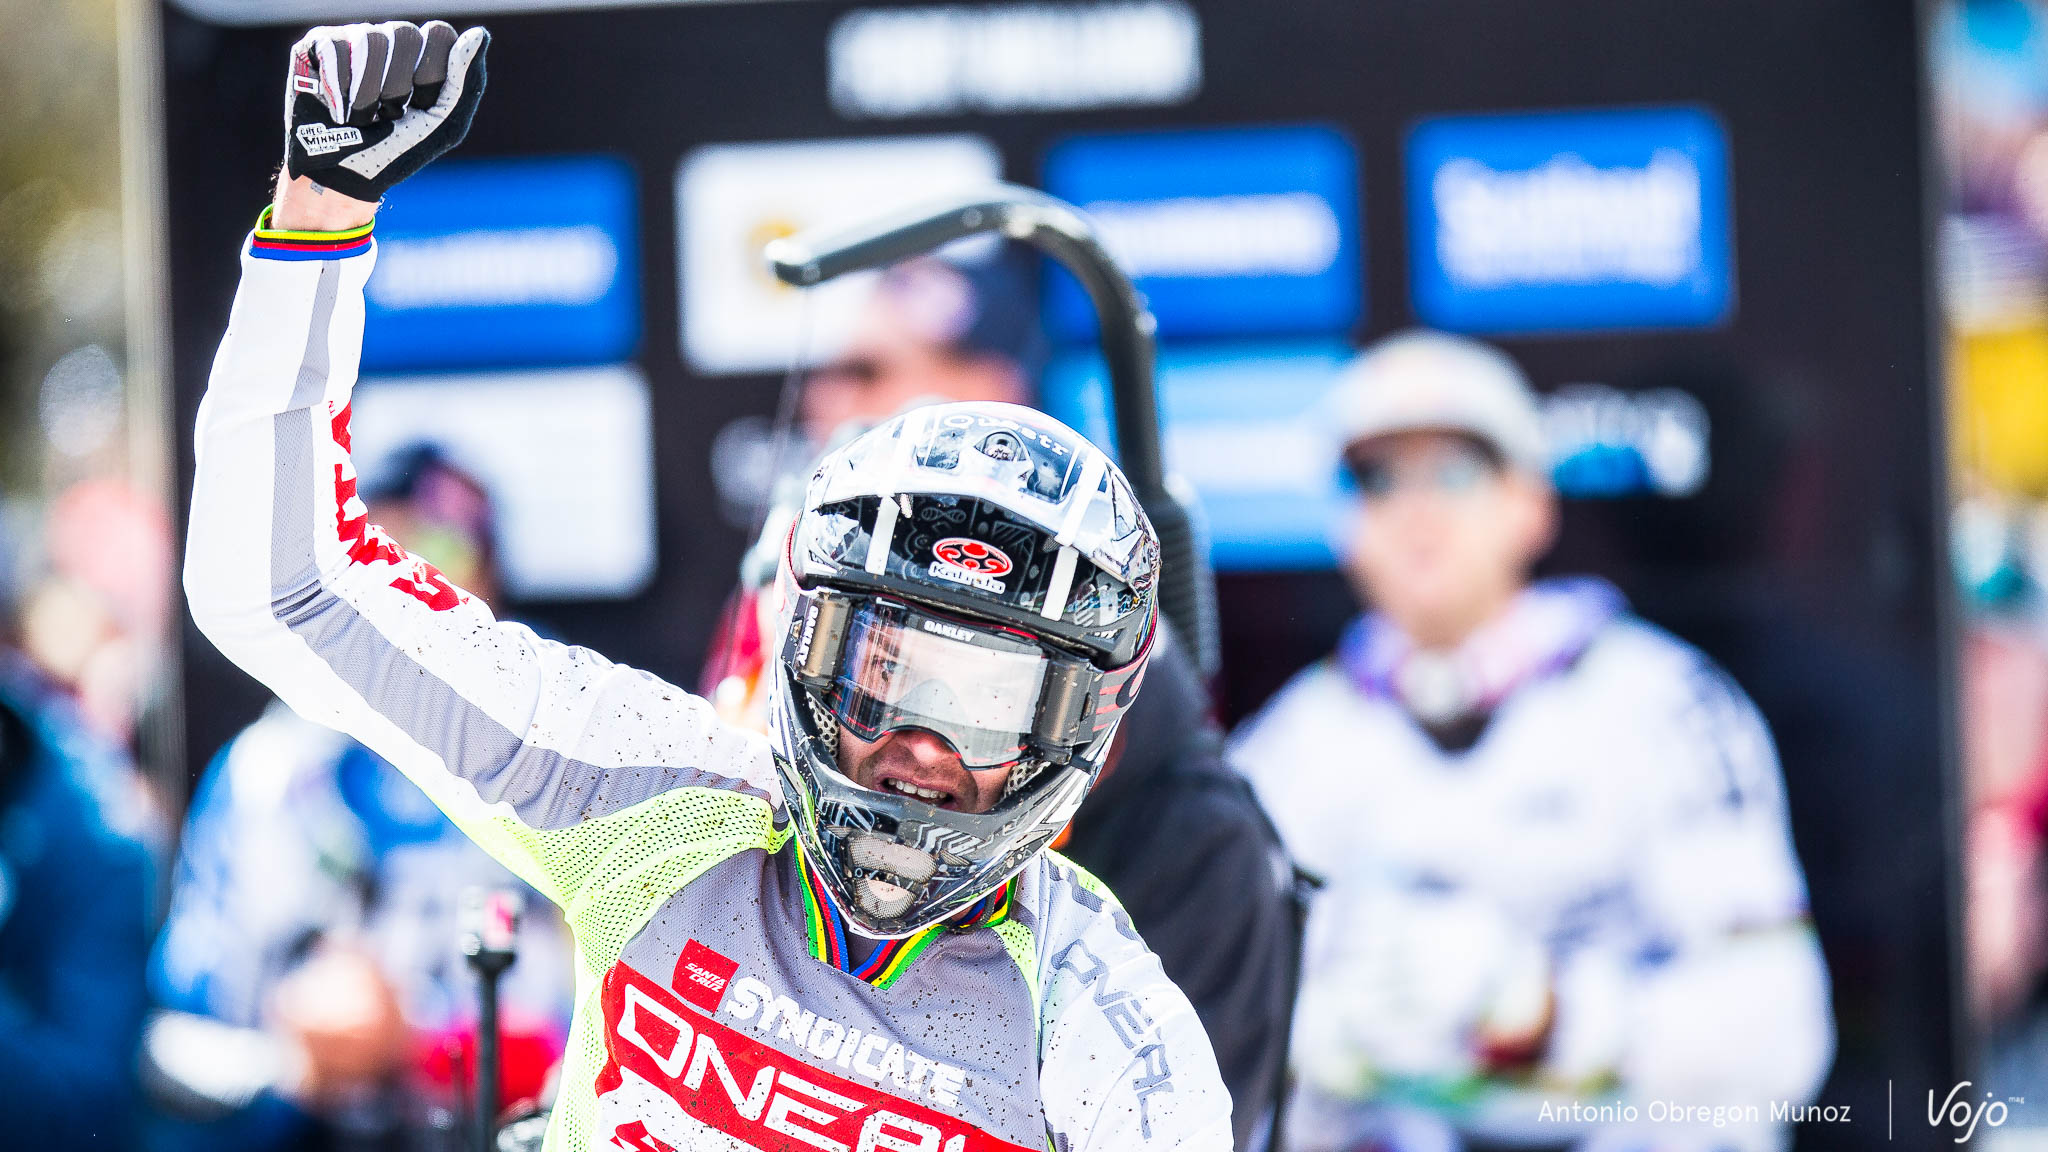 Fort_William_UCI_World_Cup_DH_2015_(finals_Hommes)_(GregMinnaar)_Copyright_Antonio_Obregon_VojoMag-13